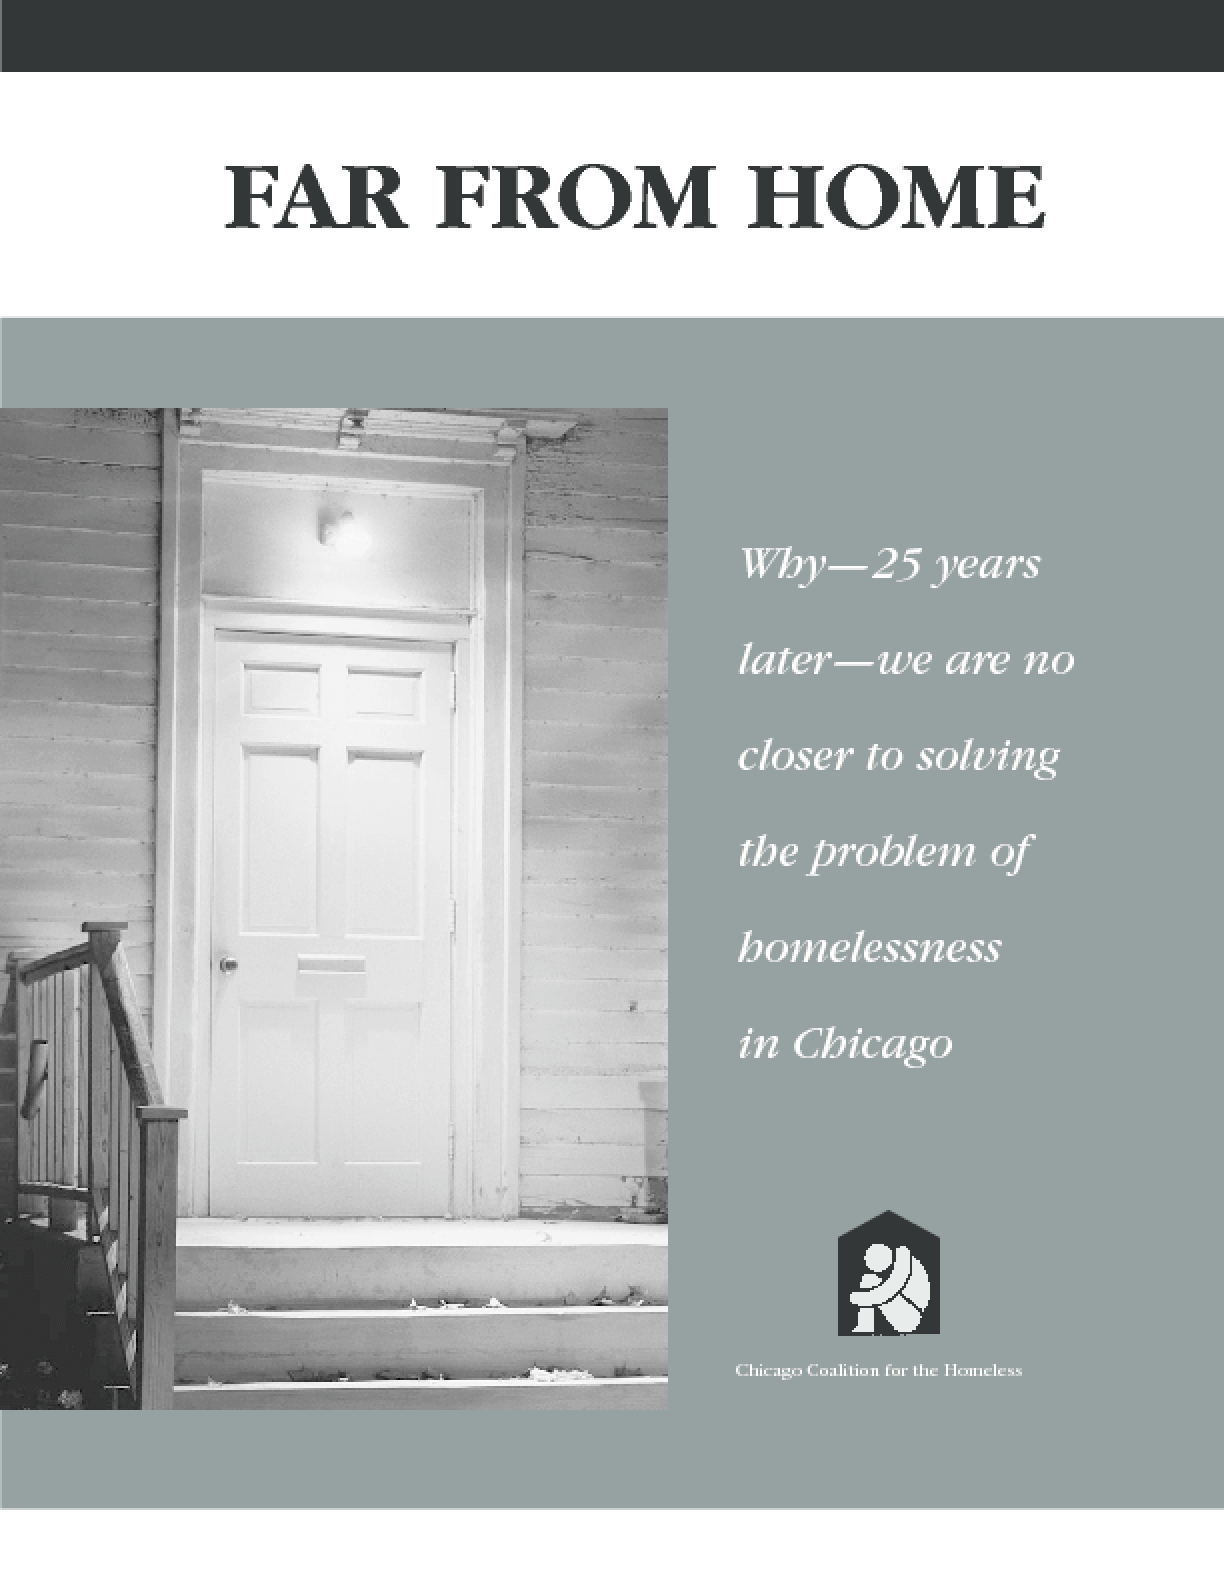 Far From Home: Why 25 years later we are no closer to solving the problem of homelessness in Chicago